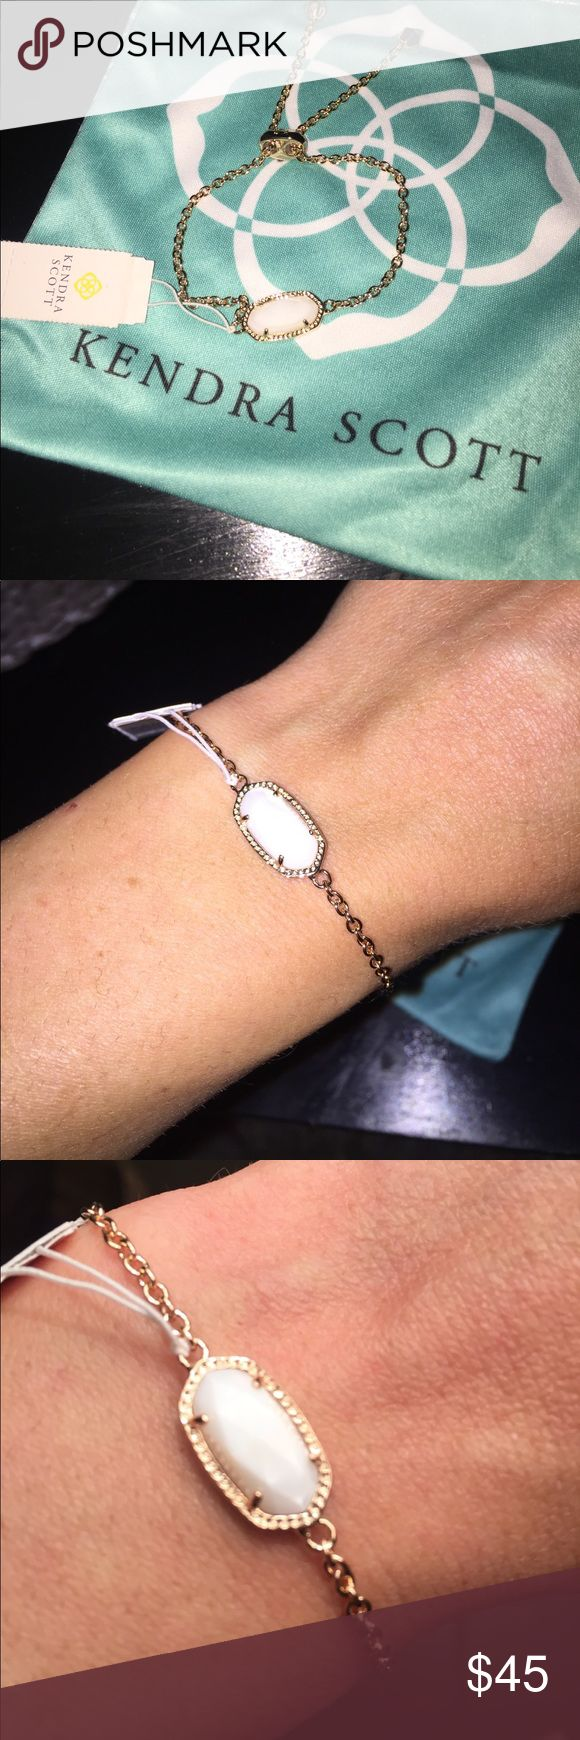 KENDRA SCOTT 💠 Elaina Bracelet white/rose gold Tags still on! Never worn but beautiful! Comes with Kendra Scott jewelry bag (has small stain) Kendra Scott Jewelry Bracelets